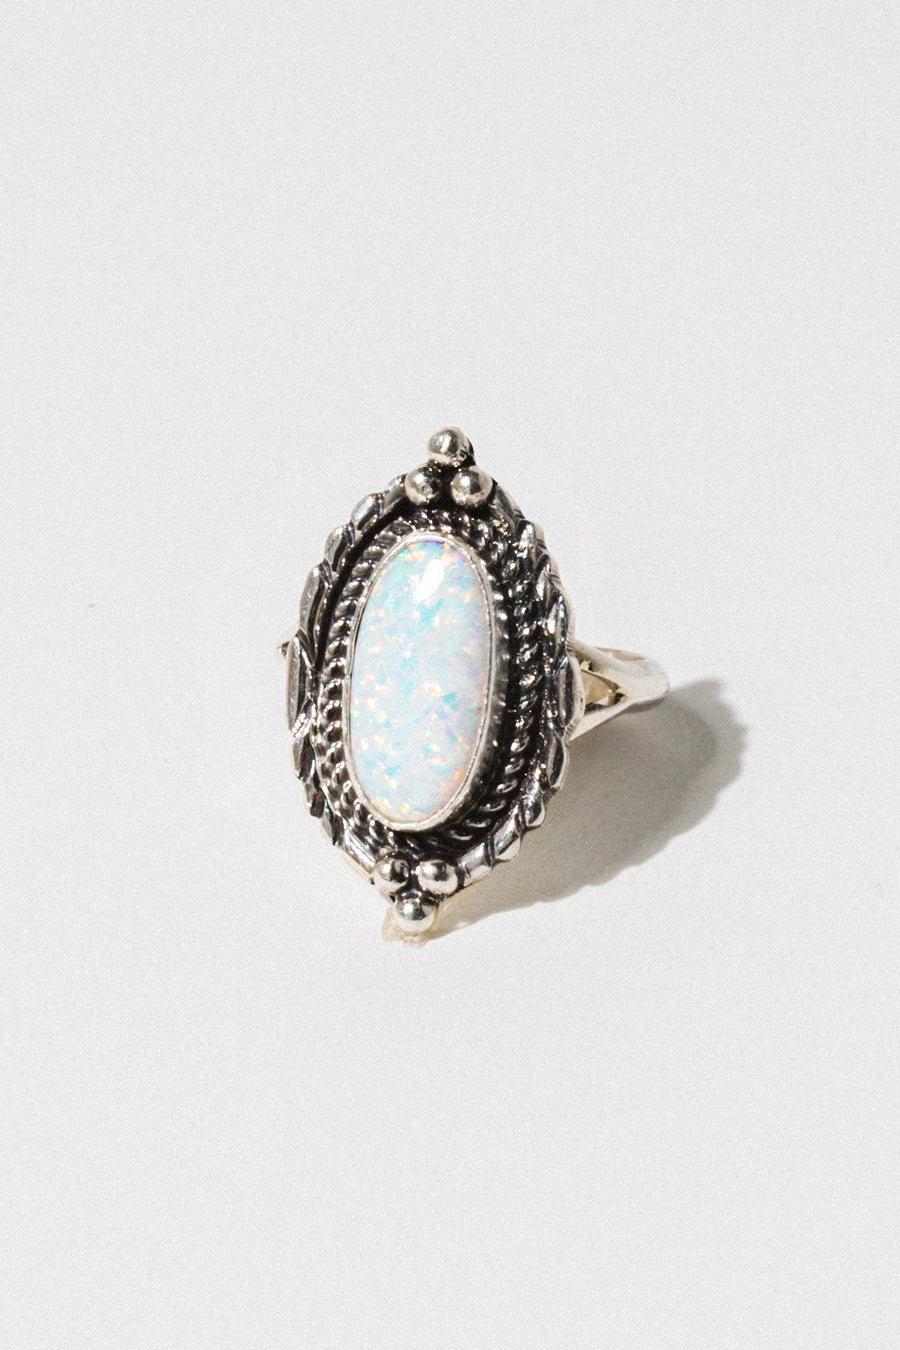 Thunderbird Jewelry Jewelry Cosmic Love Opal Ring